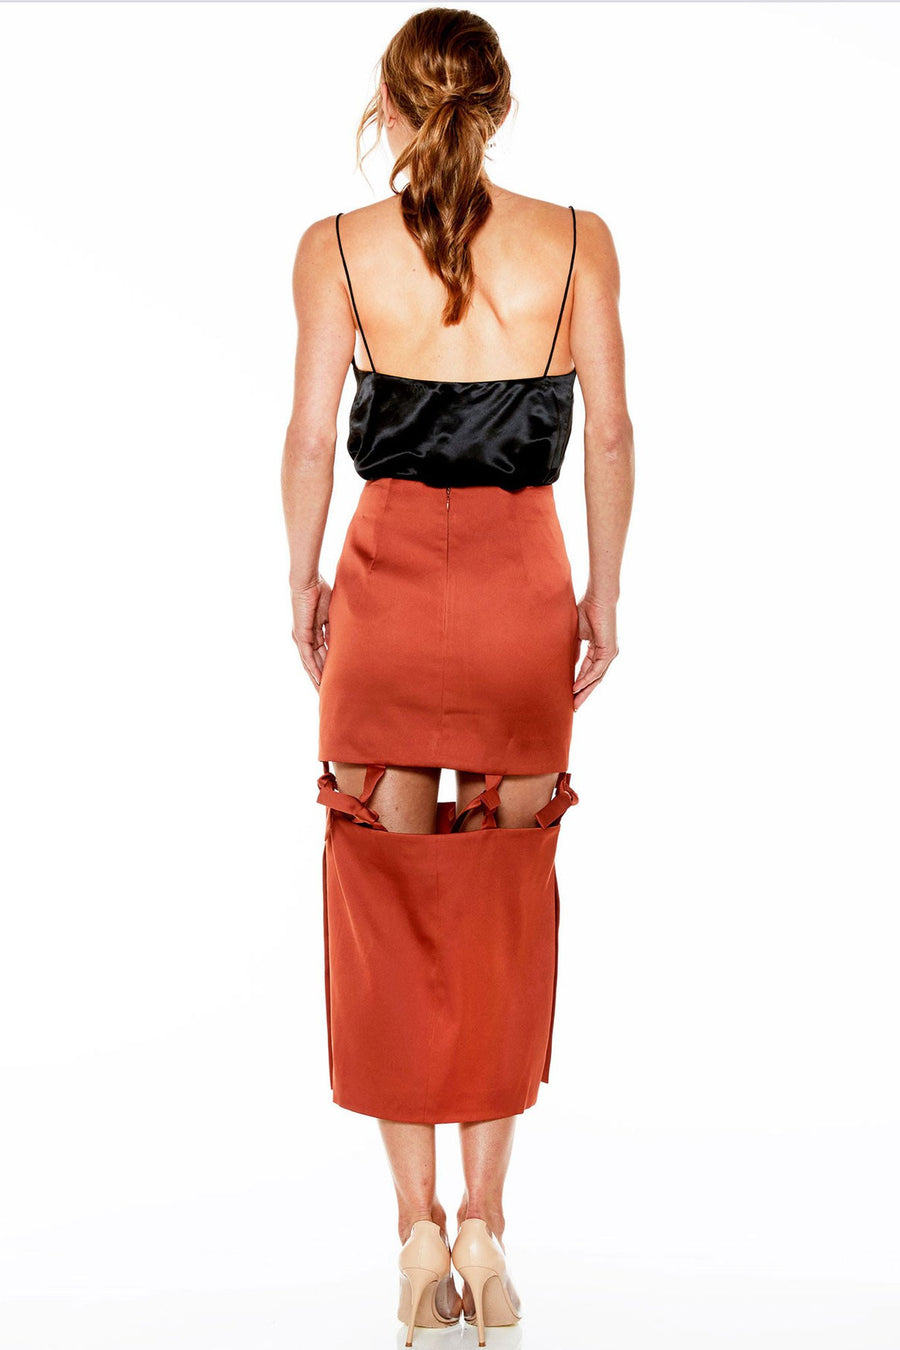 Shop Online Tied Down Skirt by Talulah | Frockaholics.com Bottoms